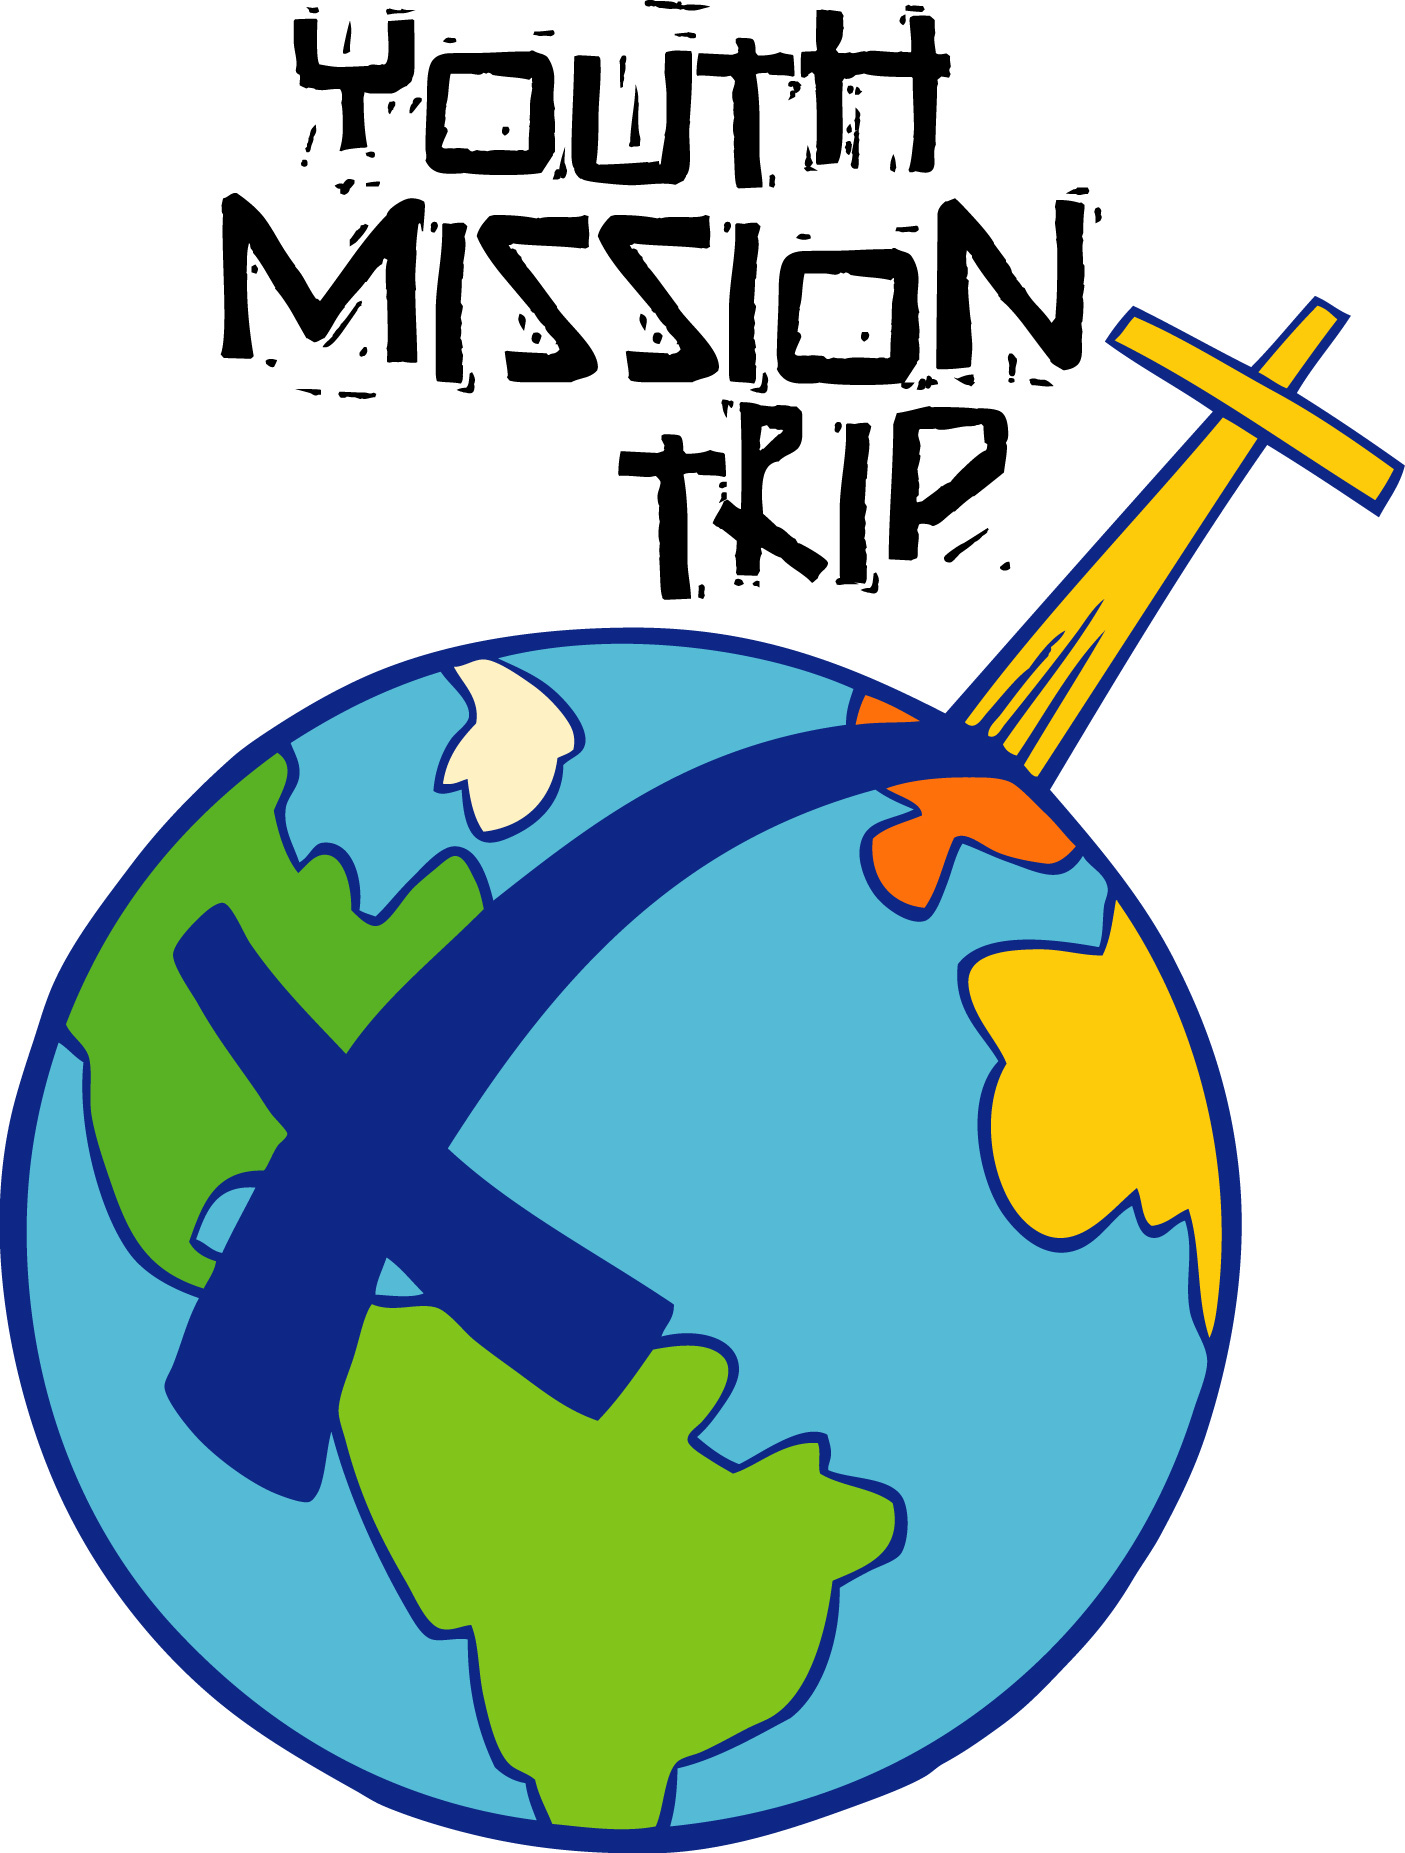 Youth Mission Trip Clip Art July 27 free image.